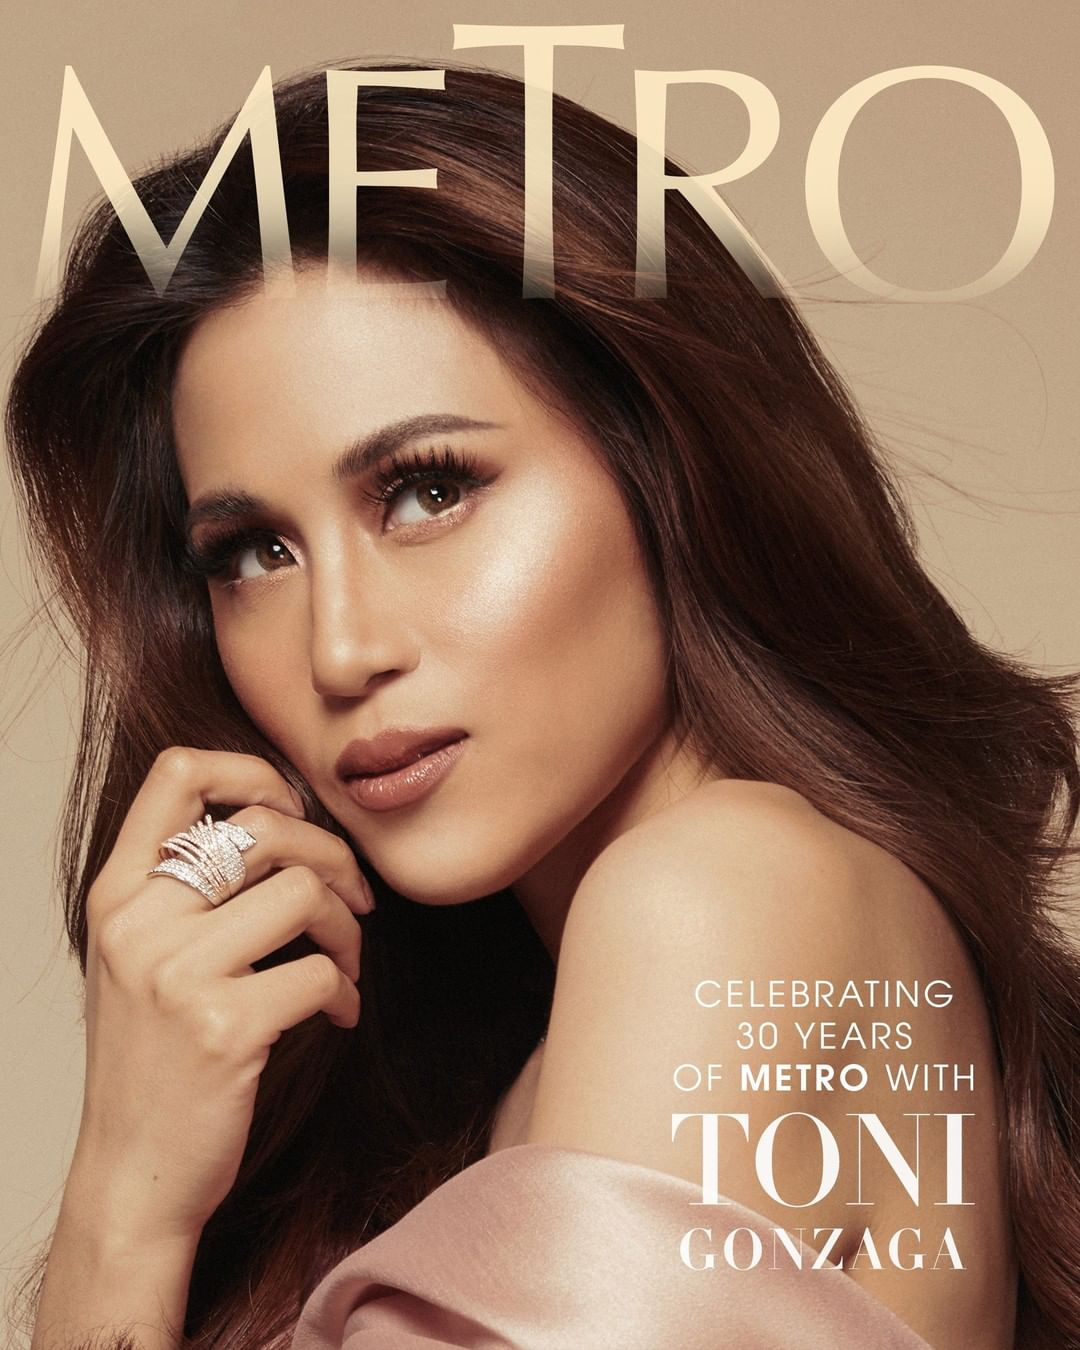 Toni Gonzaga for #Metro30's anniversary issue